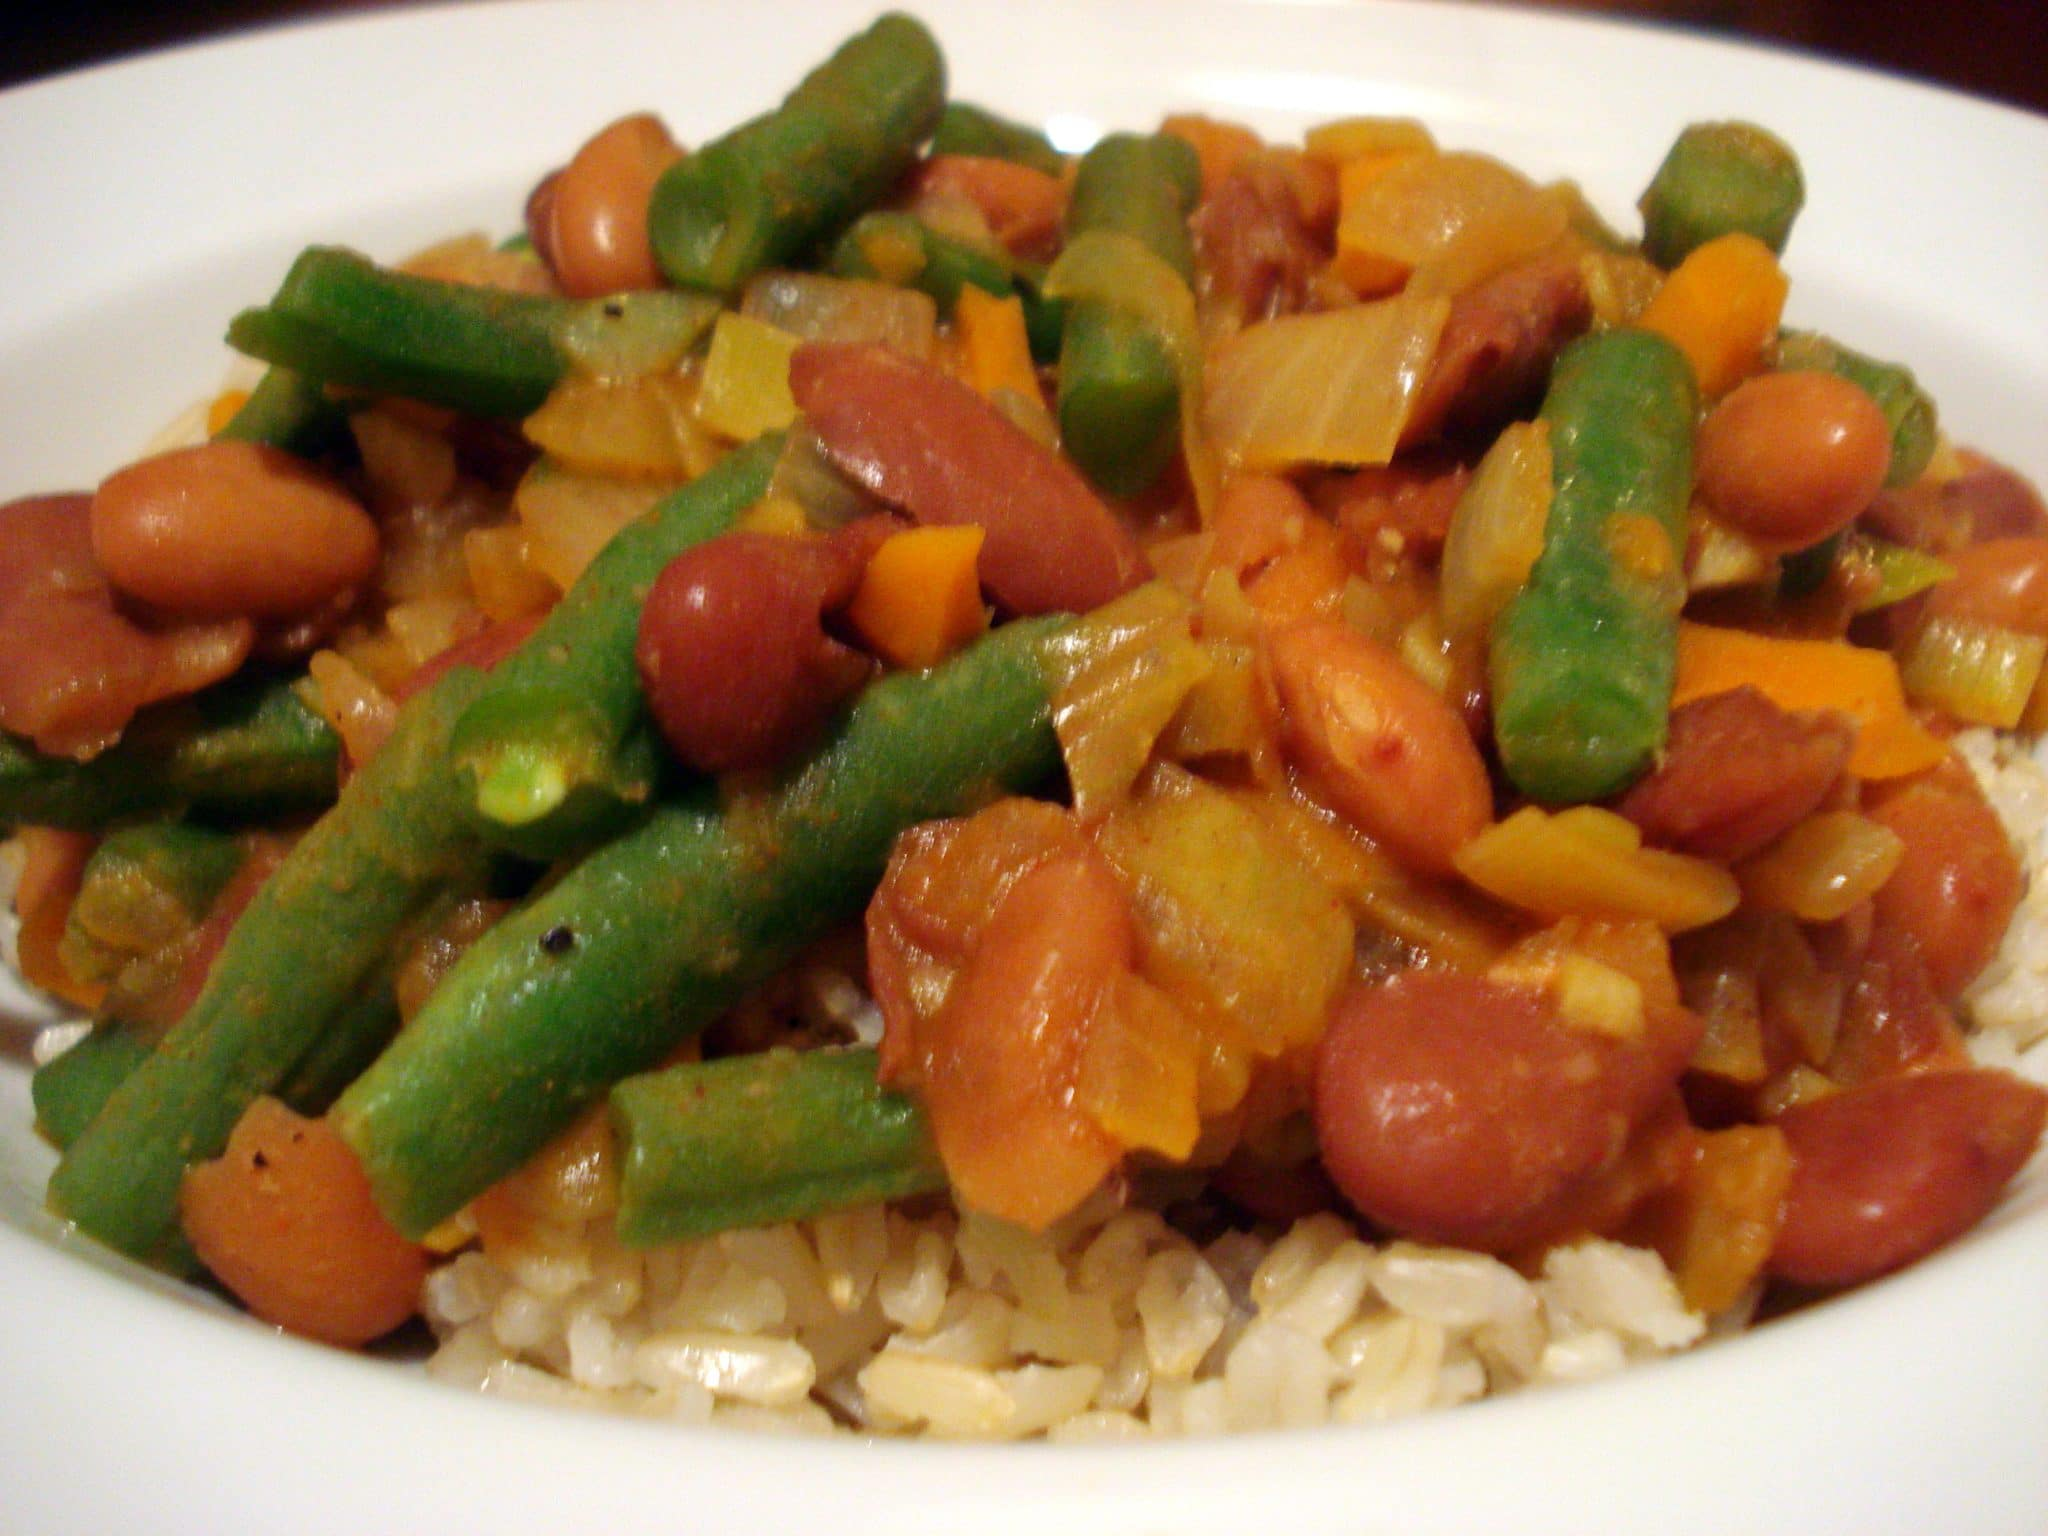 Bean stew with green beans and onions over rice